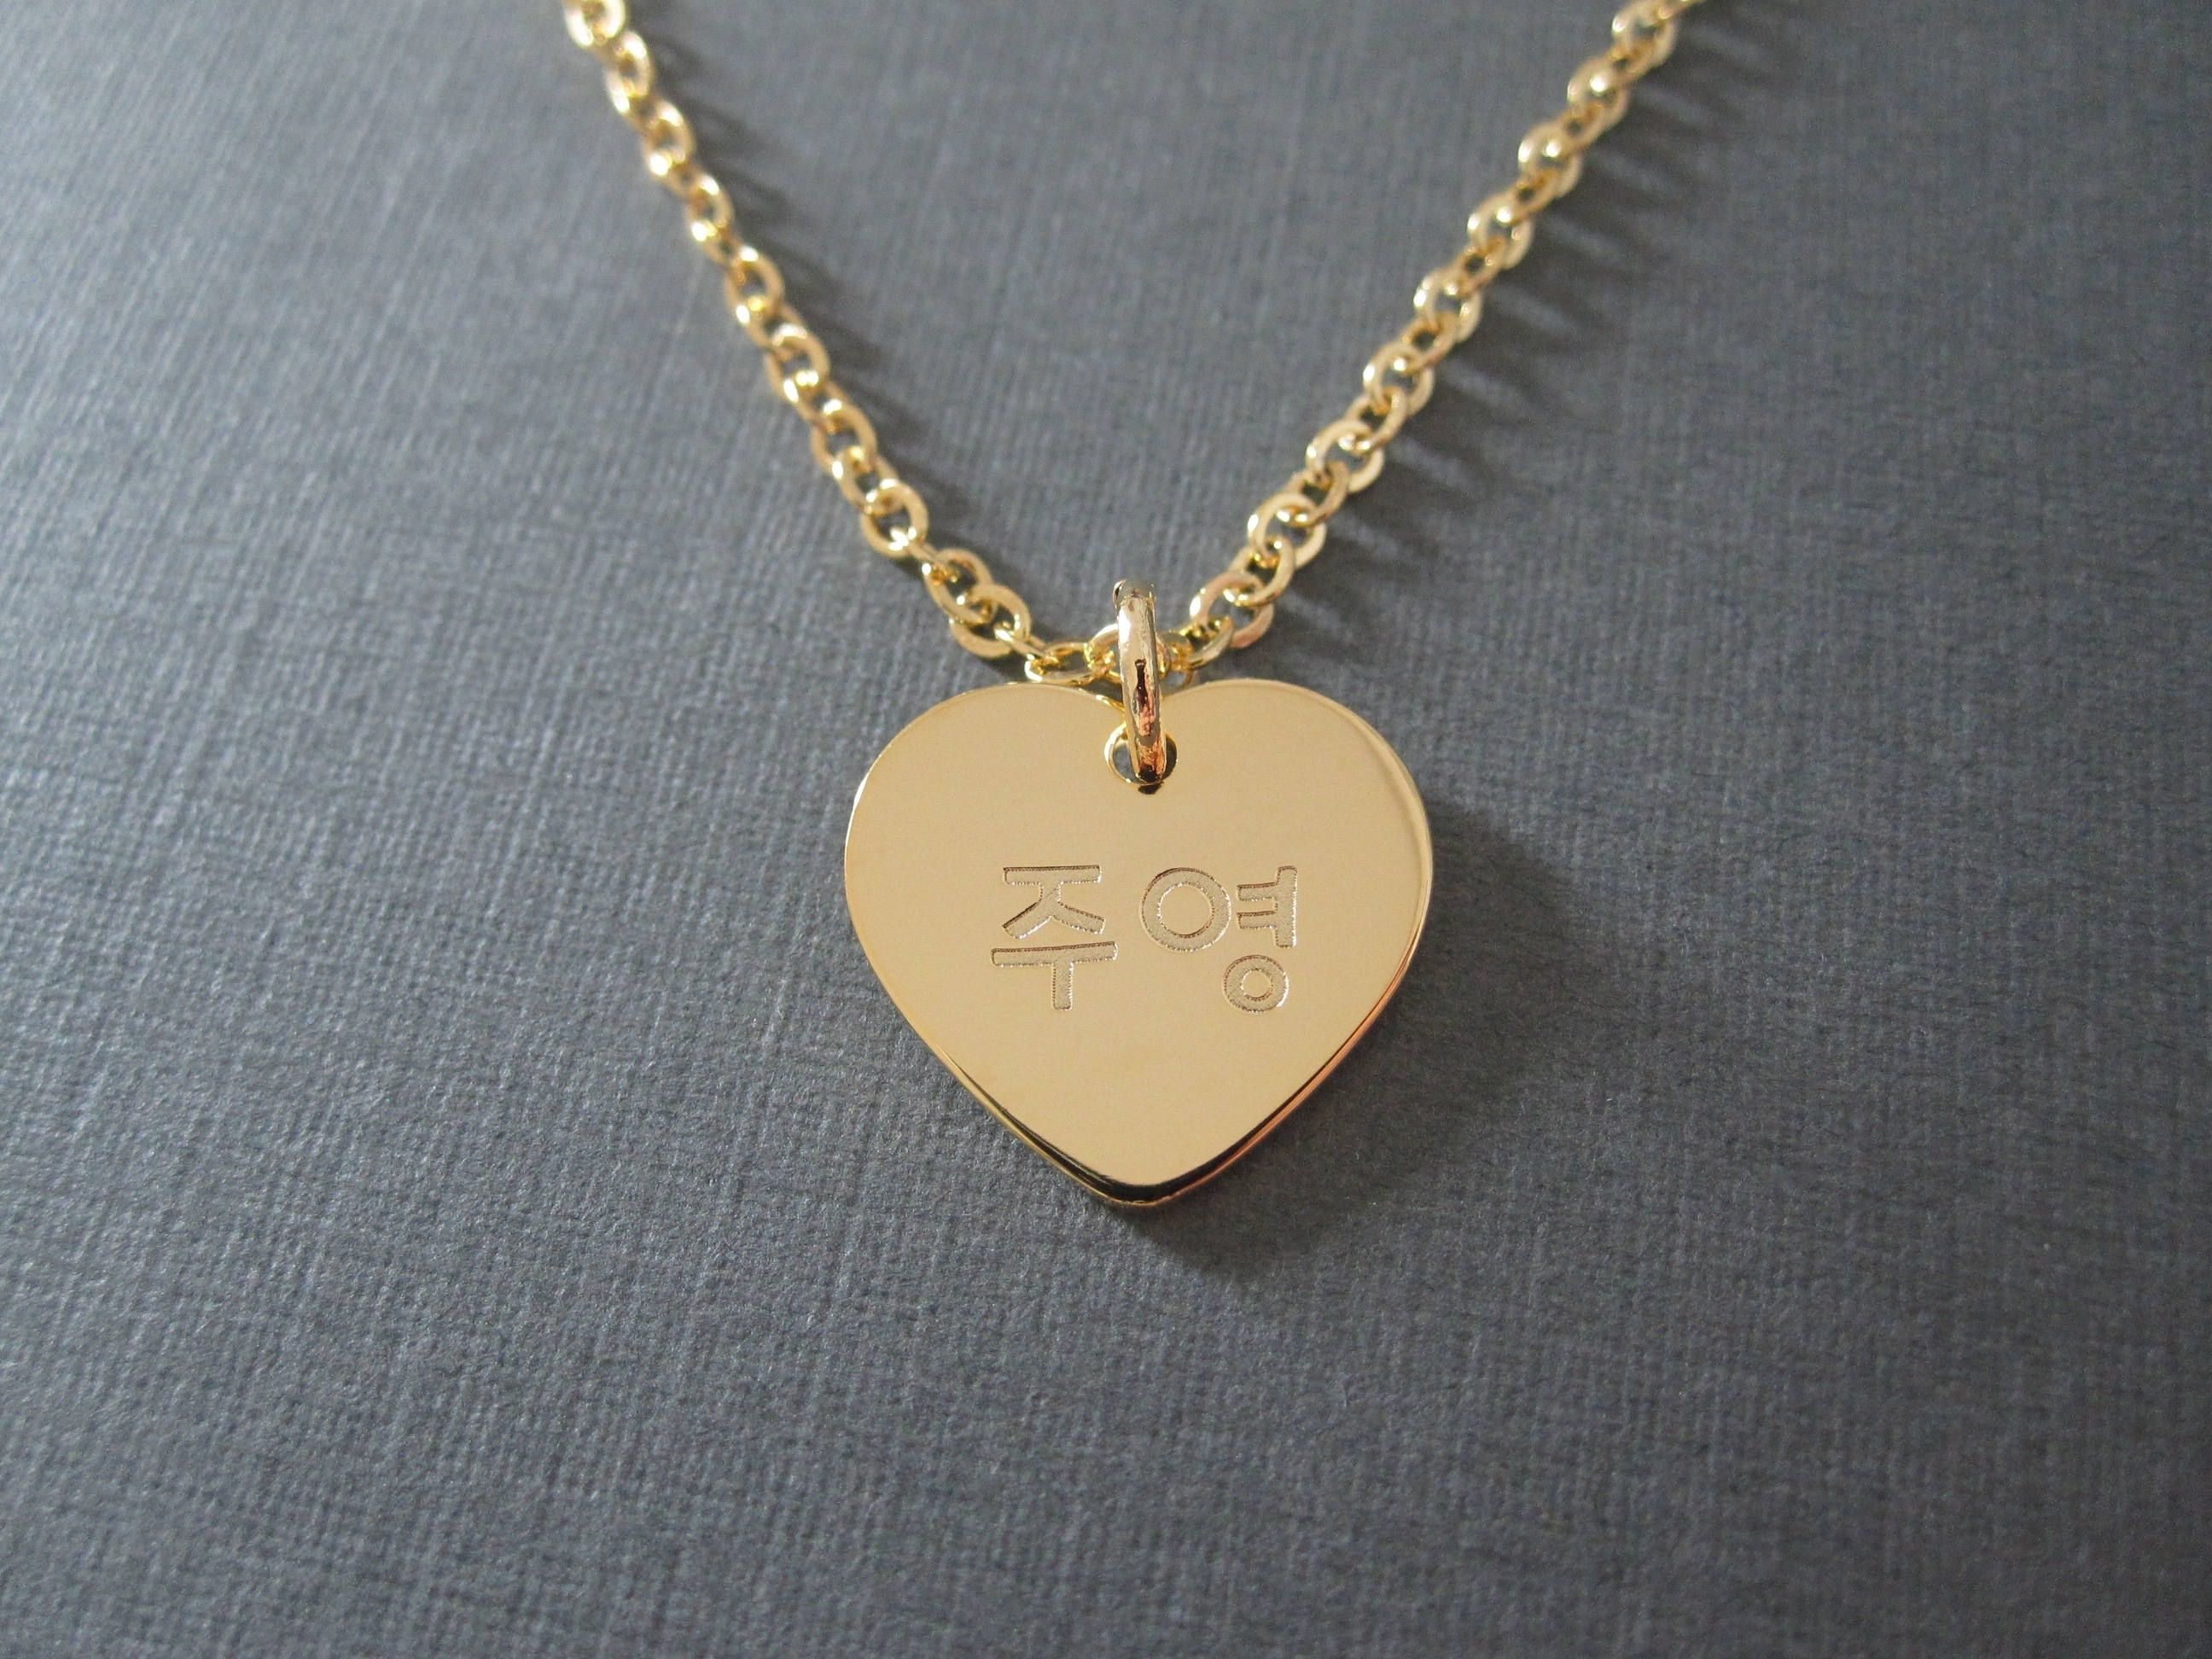 il dainty pendant en bar description sg personalized gold listing fullxfull rose bracelet